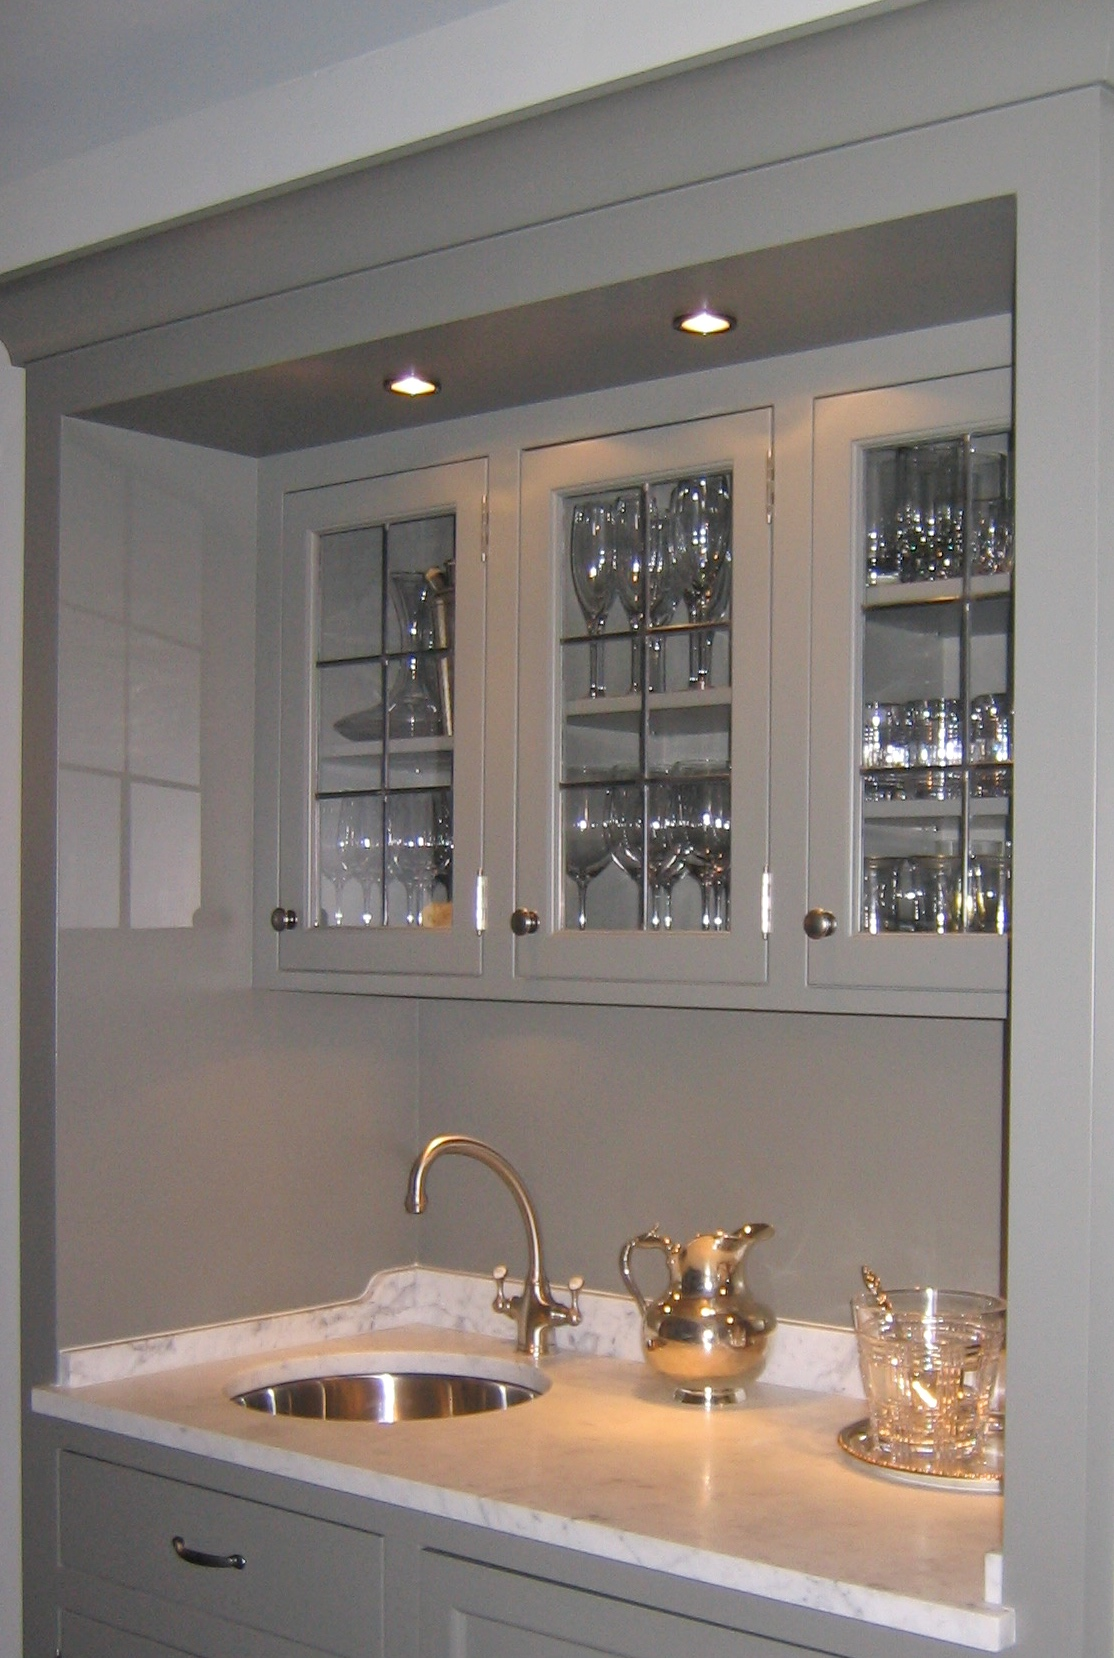 custom leaded glass cabinet door inserts butlers pantry wet bar cabinets simple clean grid traditional glass design legacy glass studios.jpg